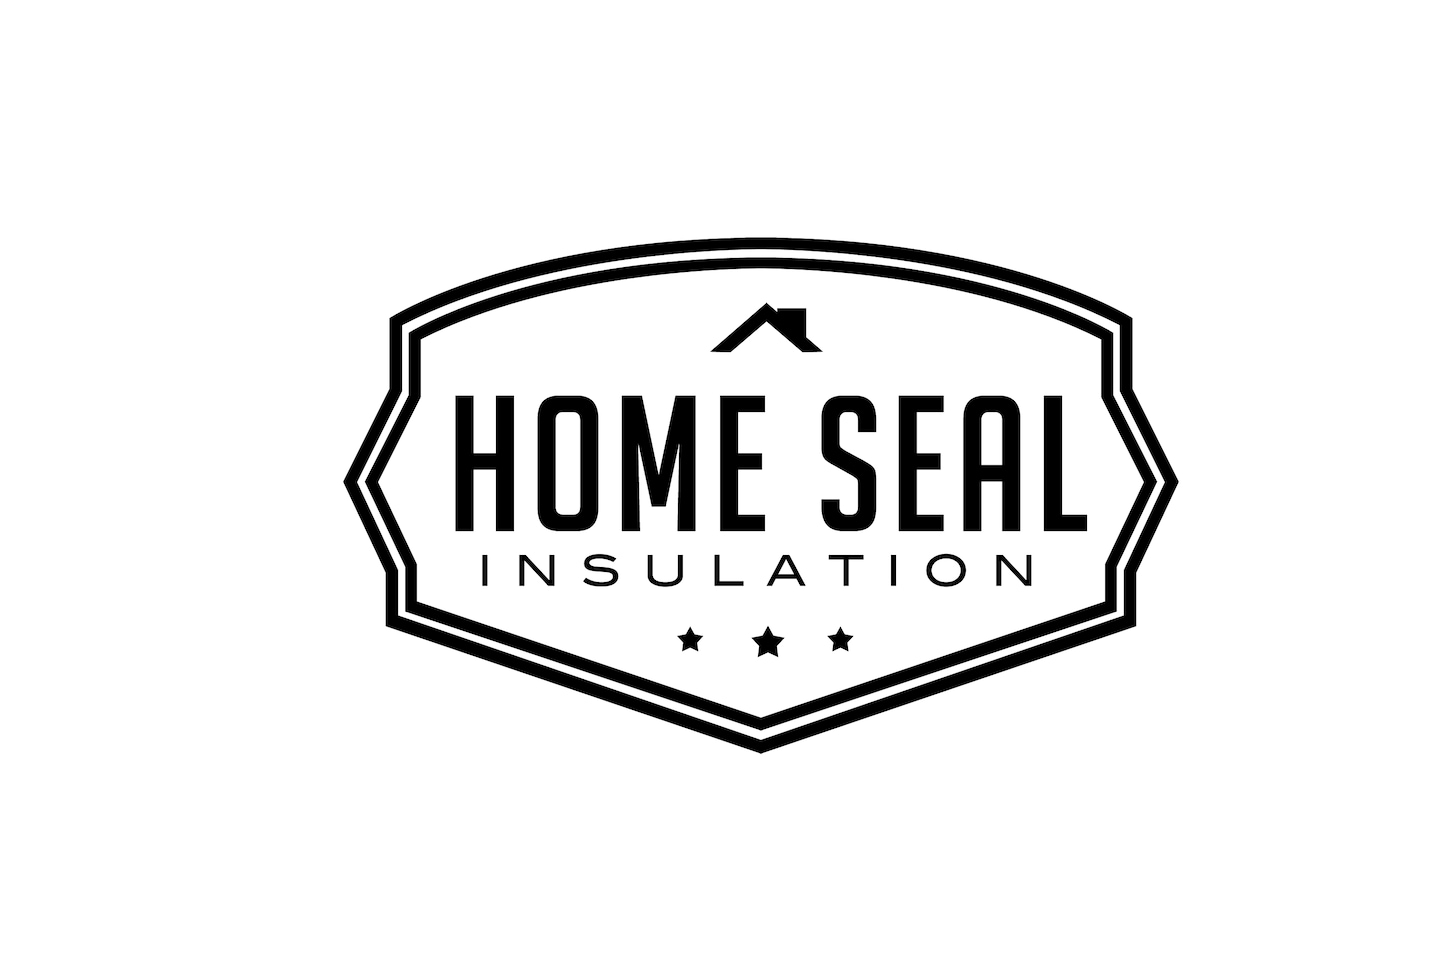 Home Seal Insulation